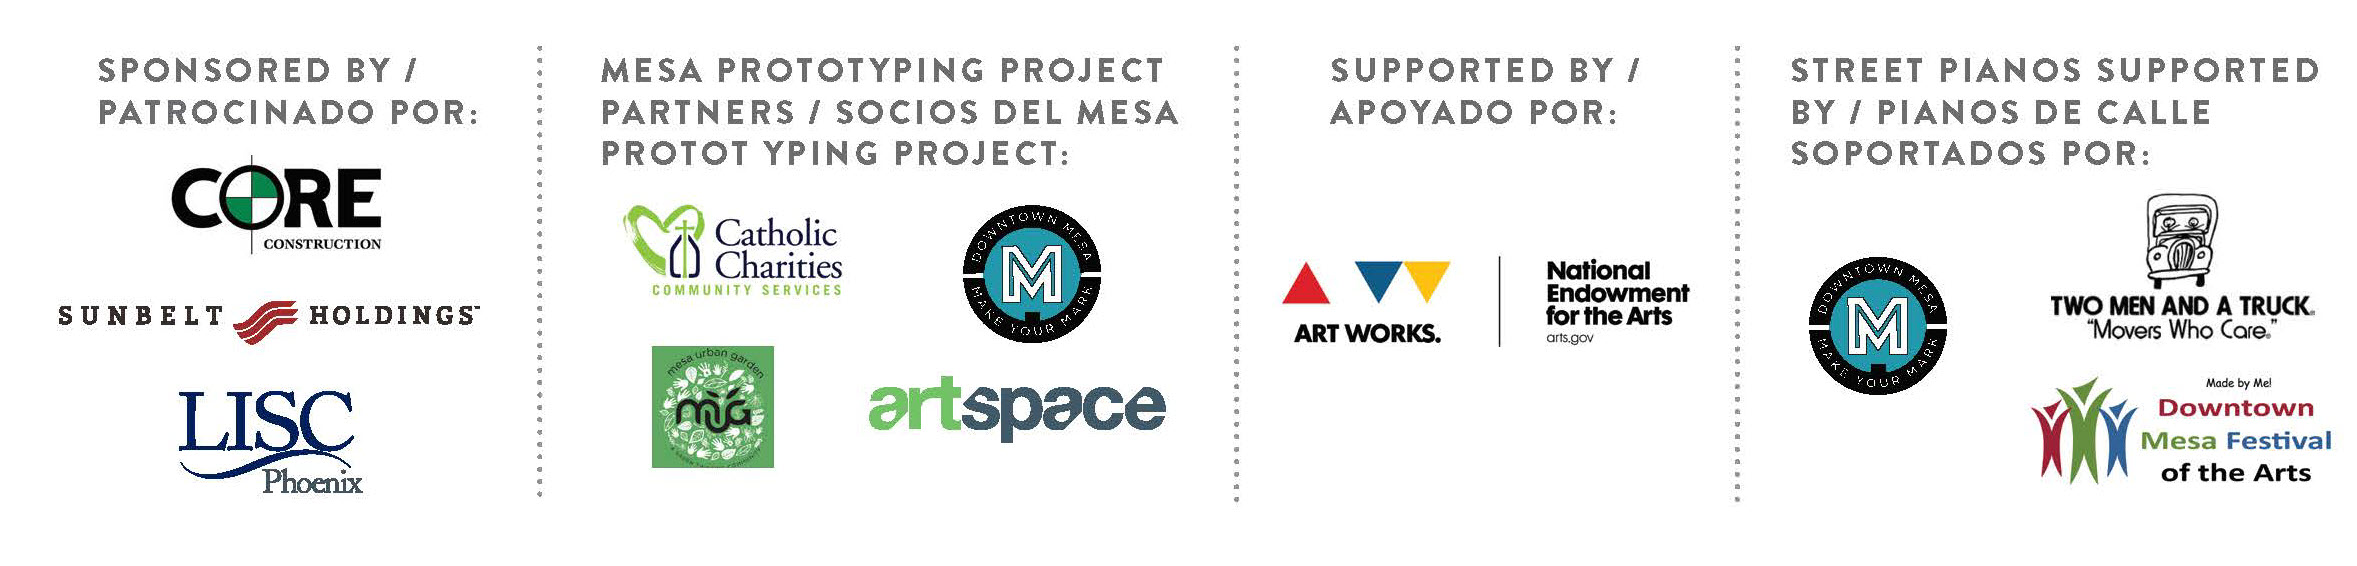 Mesa Prototyping Project Sponsors